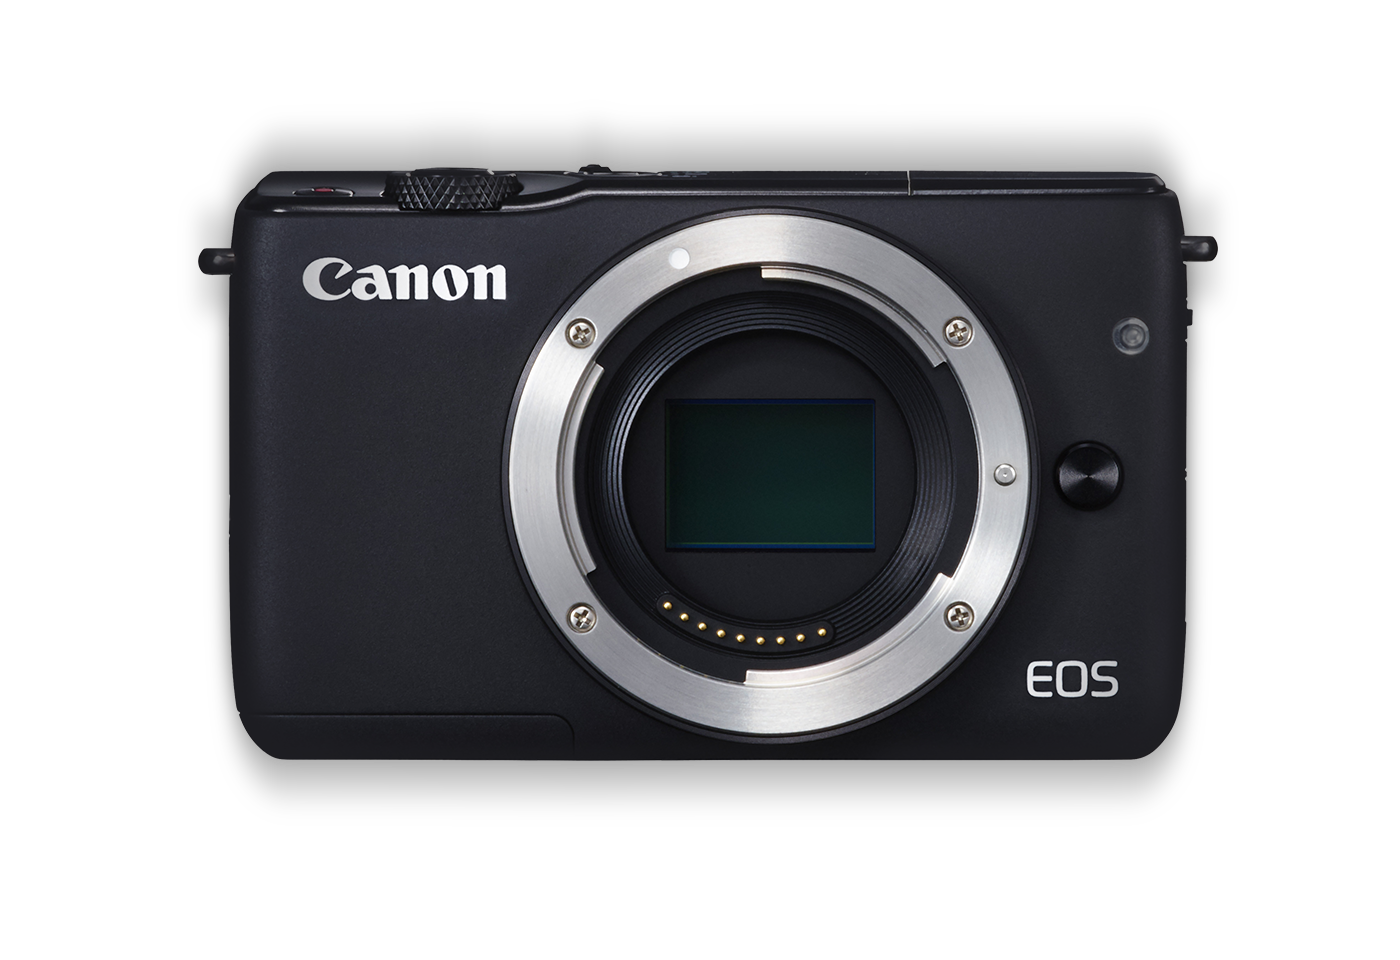 Canon EOS M10 mirrorless compact camera